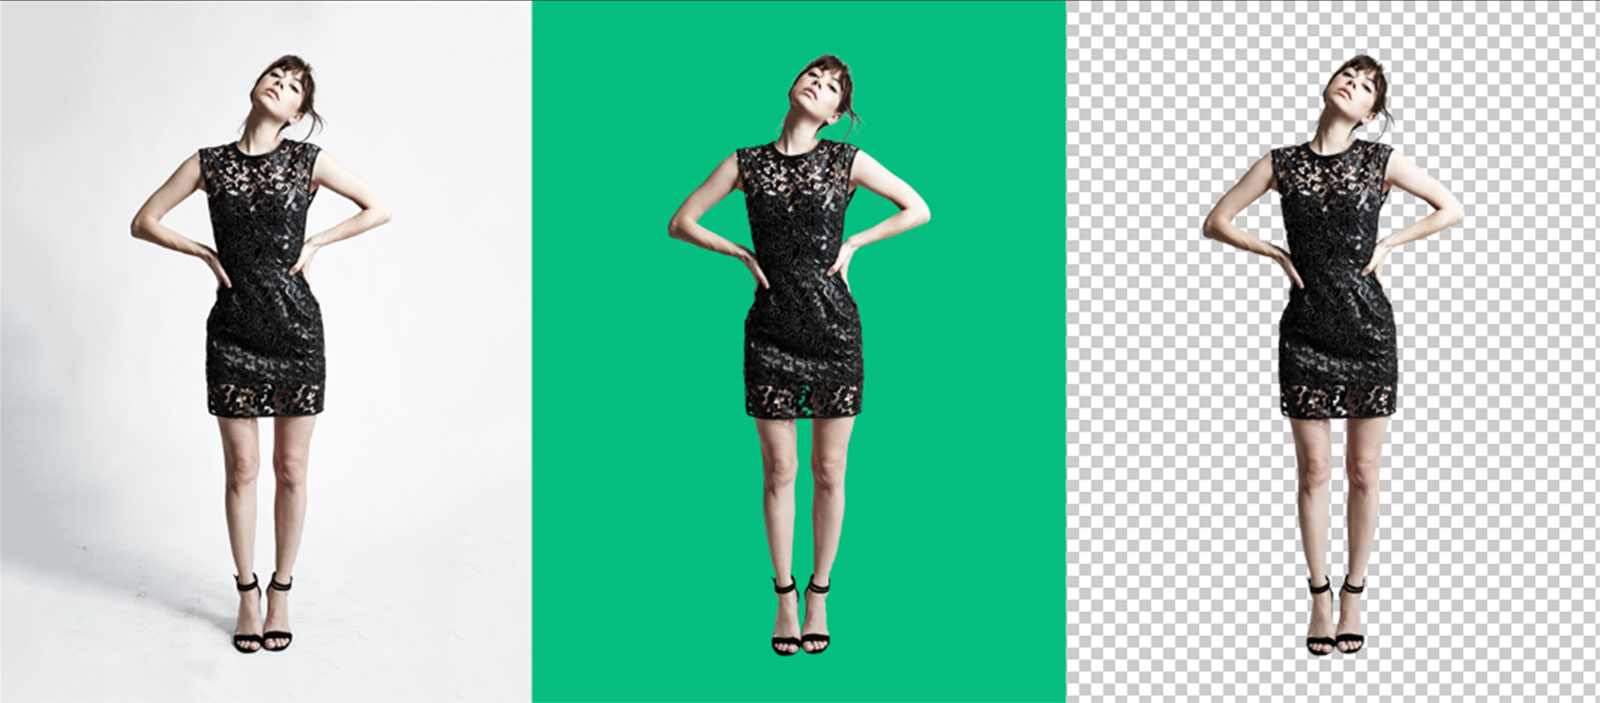 background eraser, clipping path service providers